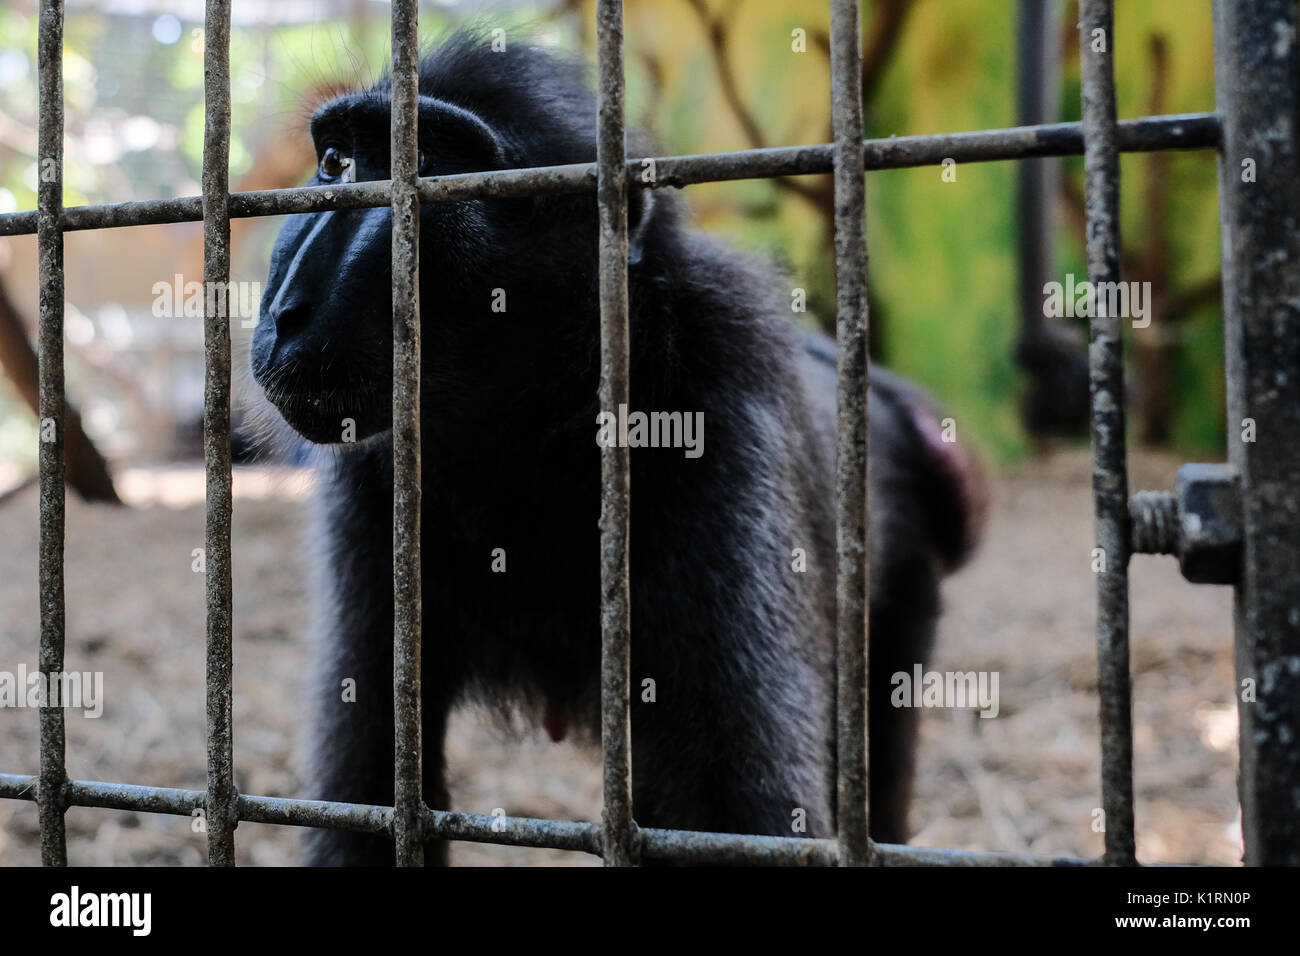 Ramat Gan, Israel. 27th August, 2017. Niv, a female, four year old Sulawesi Crested Macaque, demonstrates her maternal instincts with the adoption of a chick, which has entered the enclosure shared by Niv and her mother, Nati, at the Safari Zoological Center. Niv has been spotted hugging, grooming and feeding the chick, while the chick runs to her arms when startled and seeking security. The Sulawesi Crested Macaque, from the island of Sulawesi, Indonesia, is critically endangered with only about 6,000 individuals in the wild. Credit: Nir Alon/Alamy Live News - Stock Image